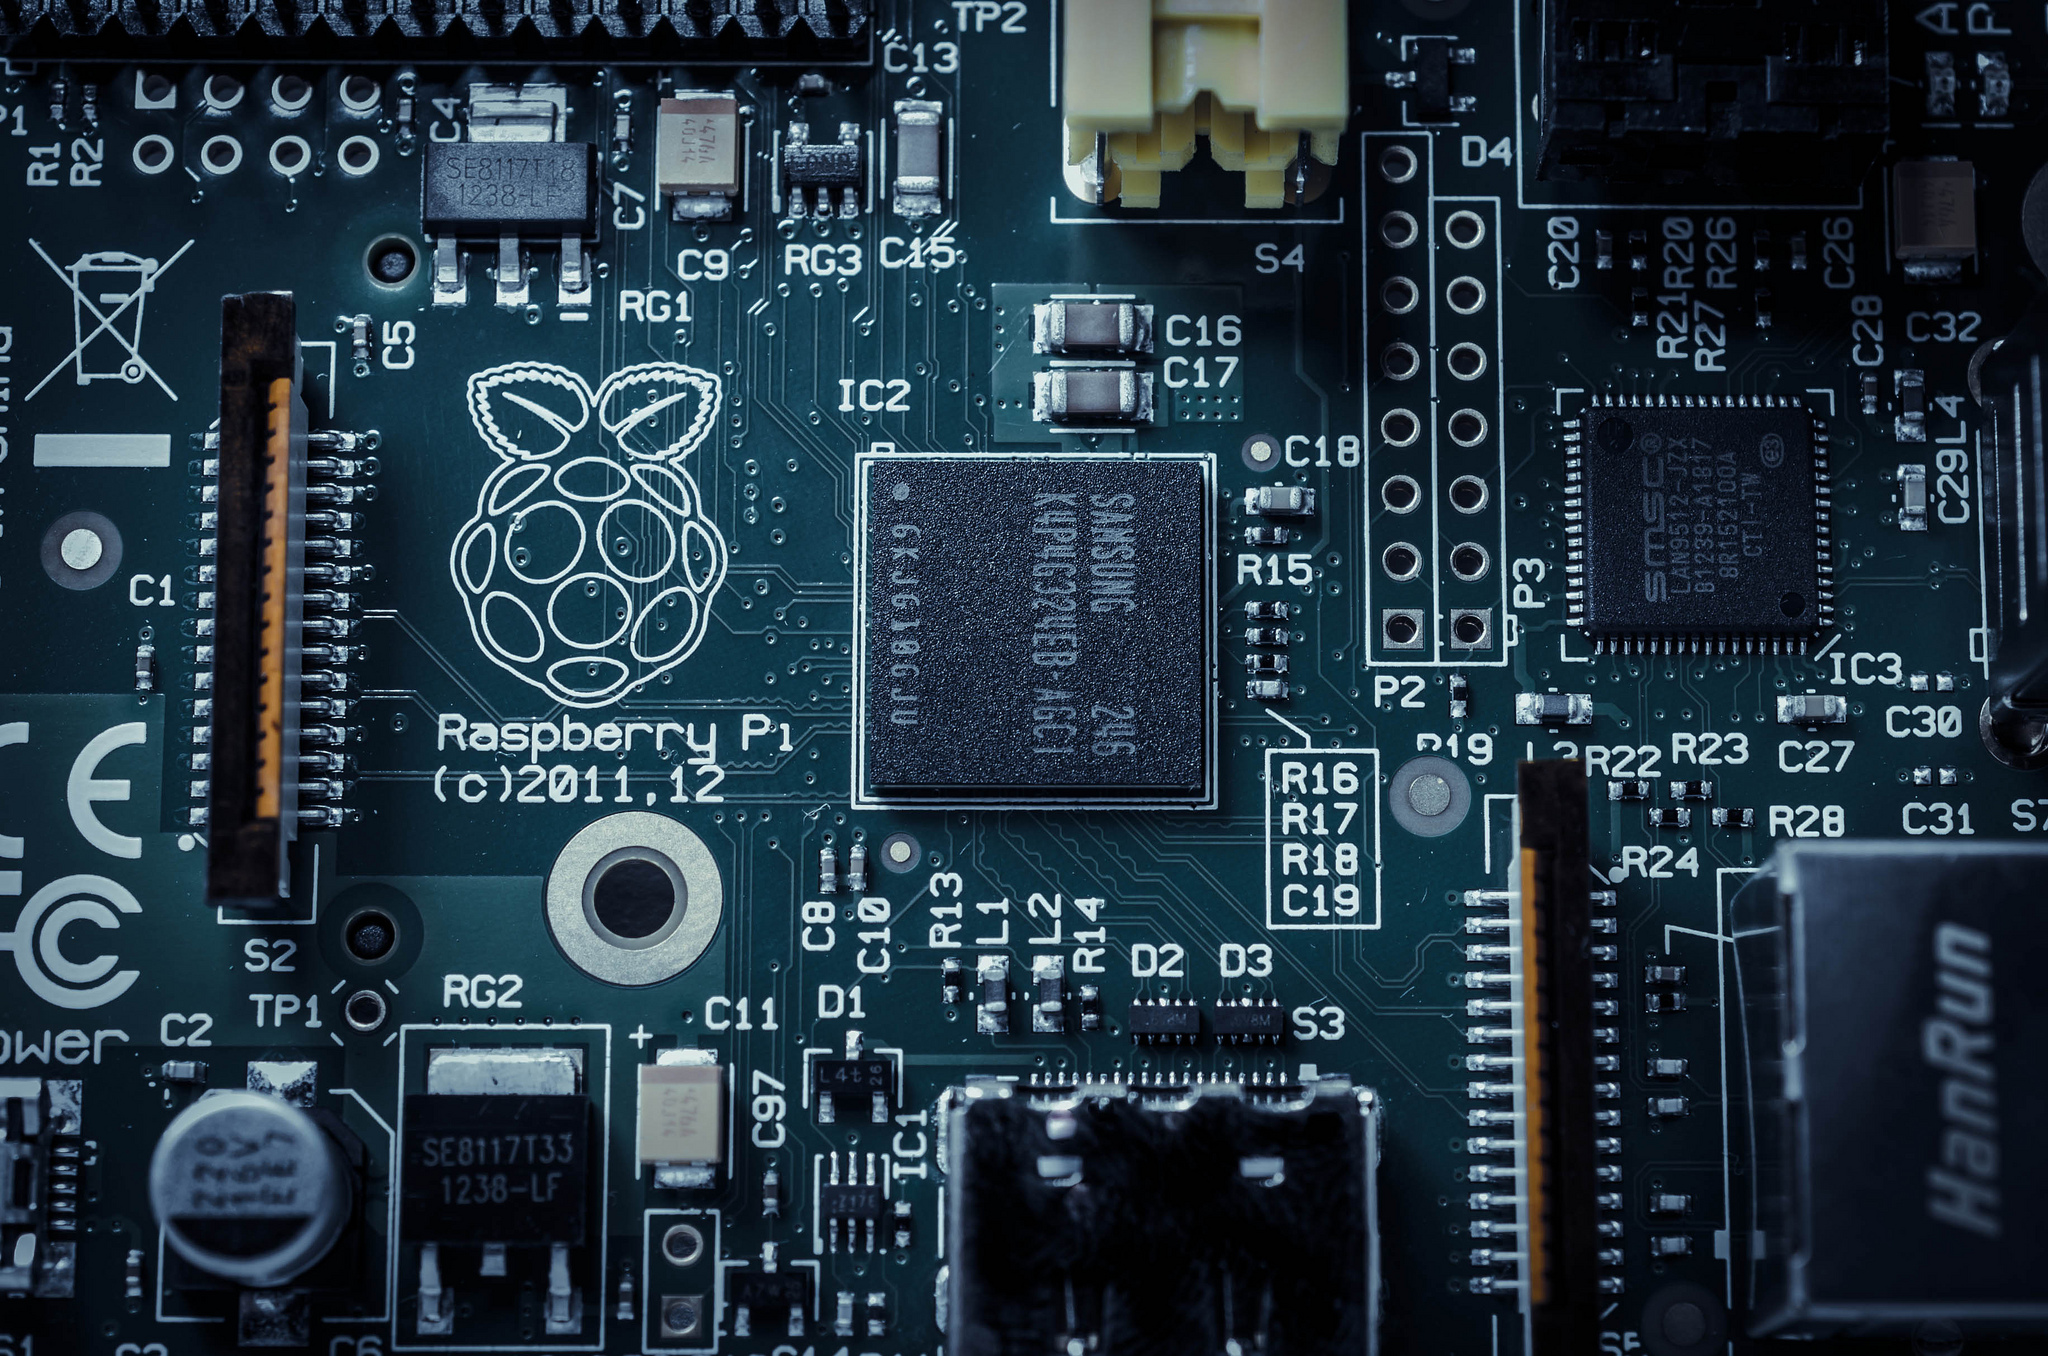 Raspberry Pi wants even more coding kids